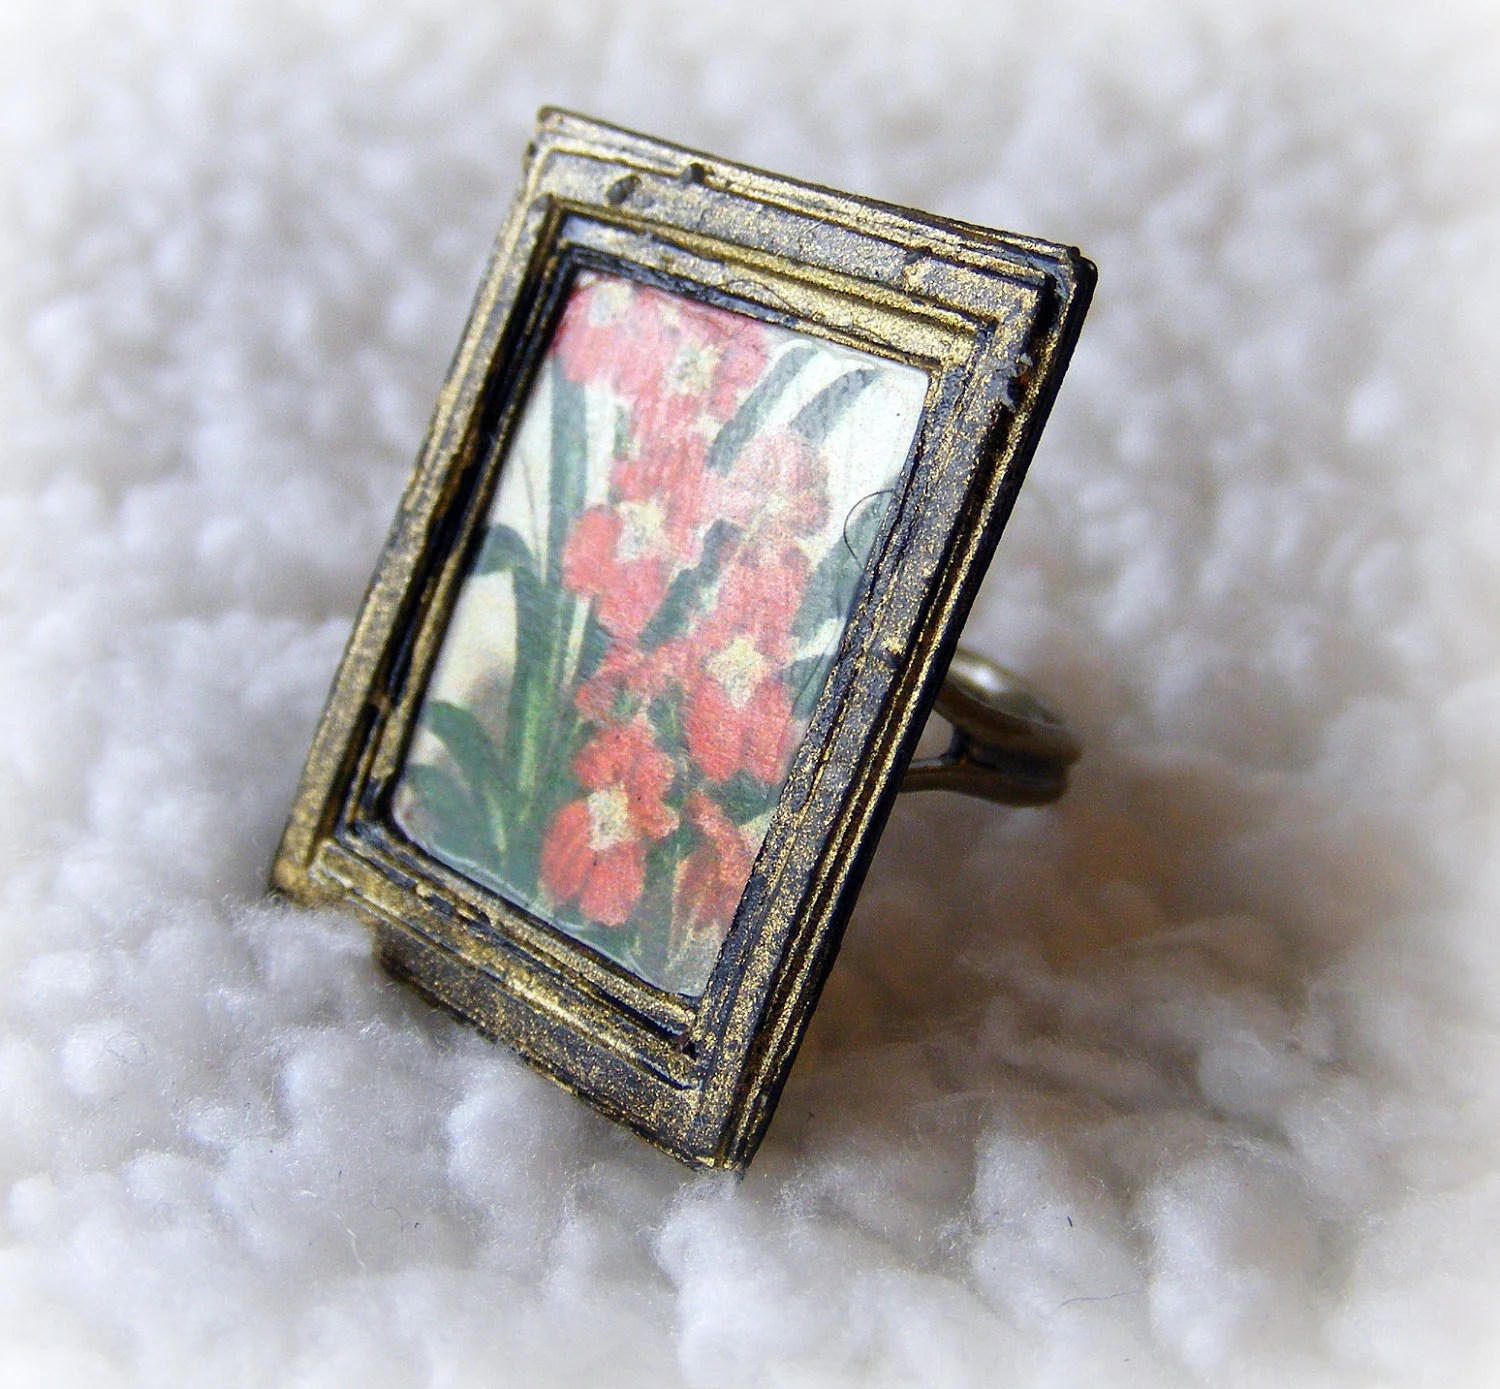 Ring Miniature Floral  Art Antique Bronze